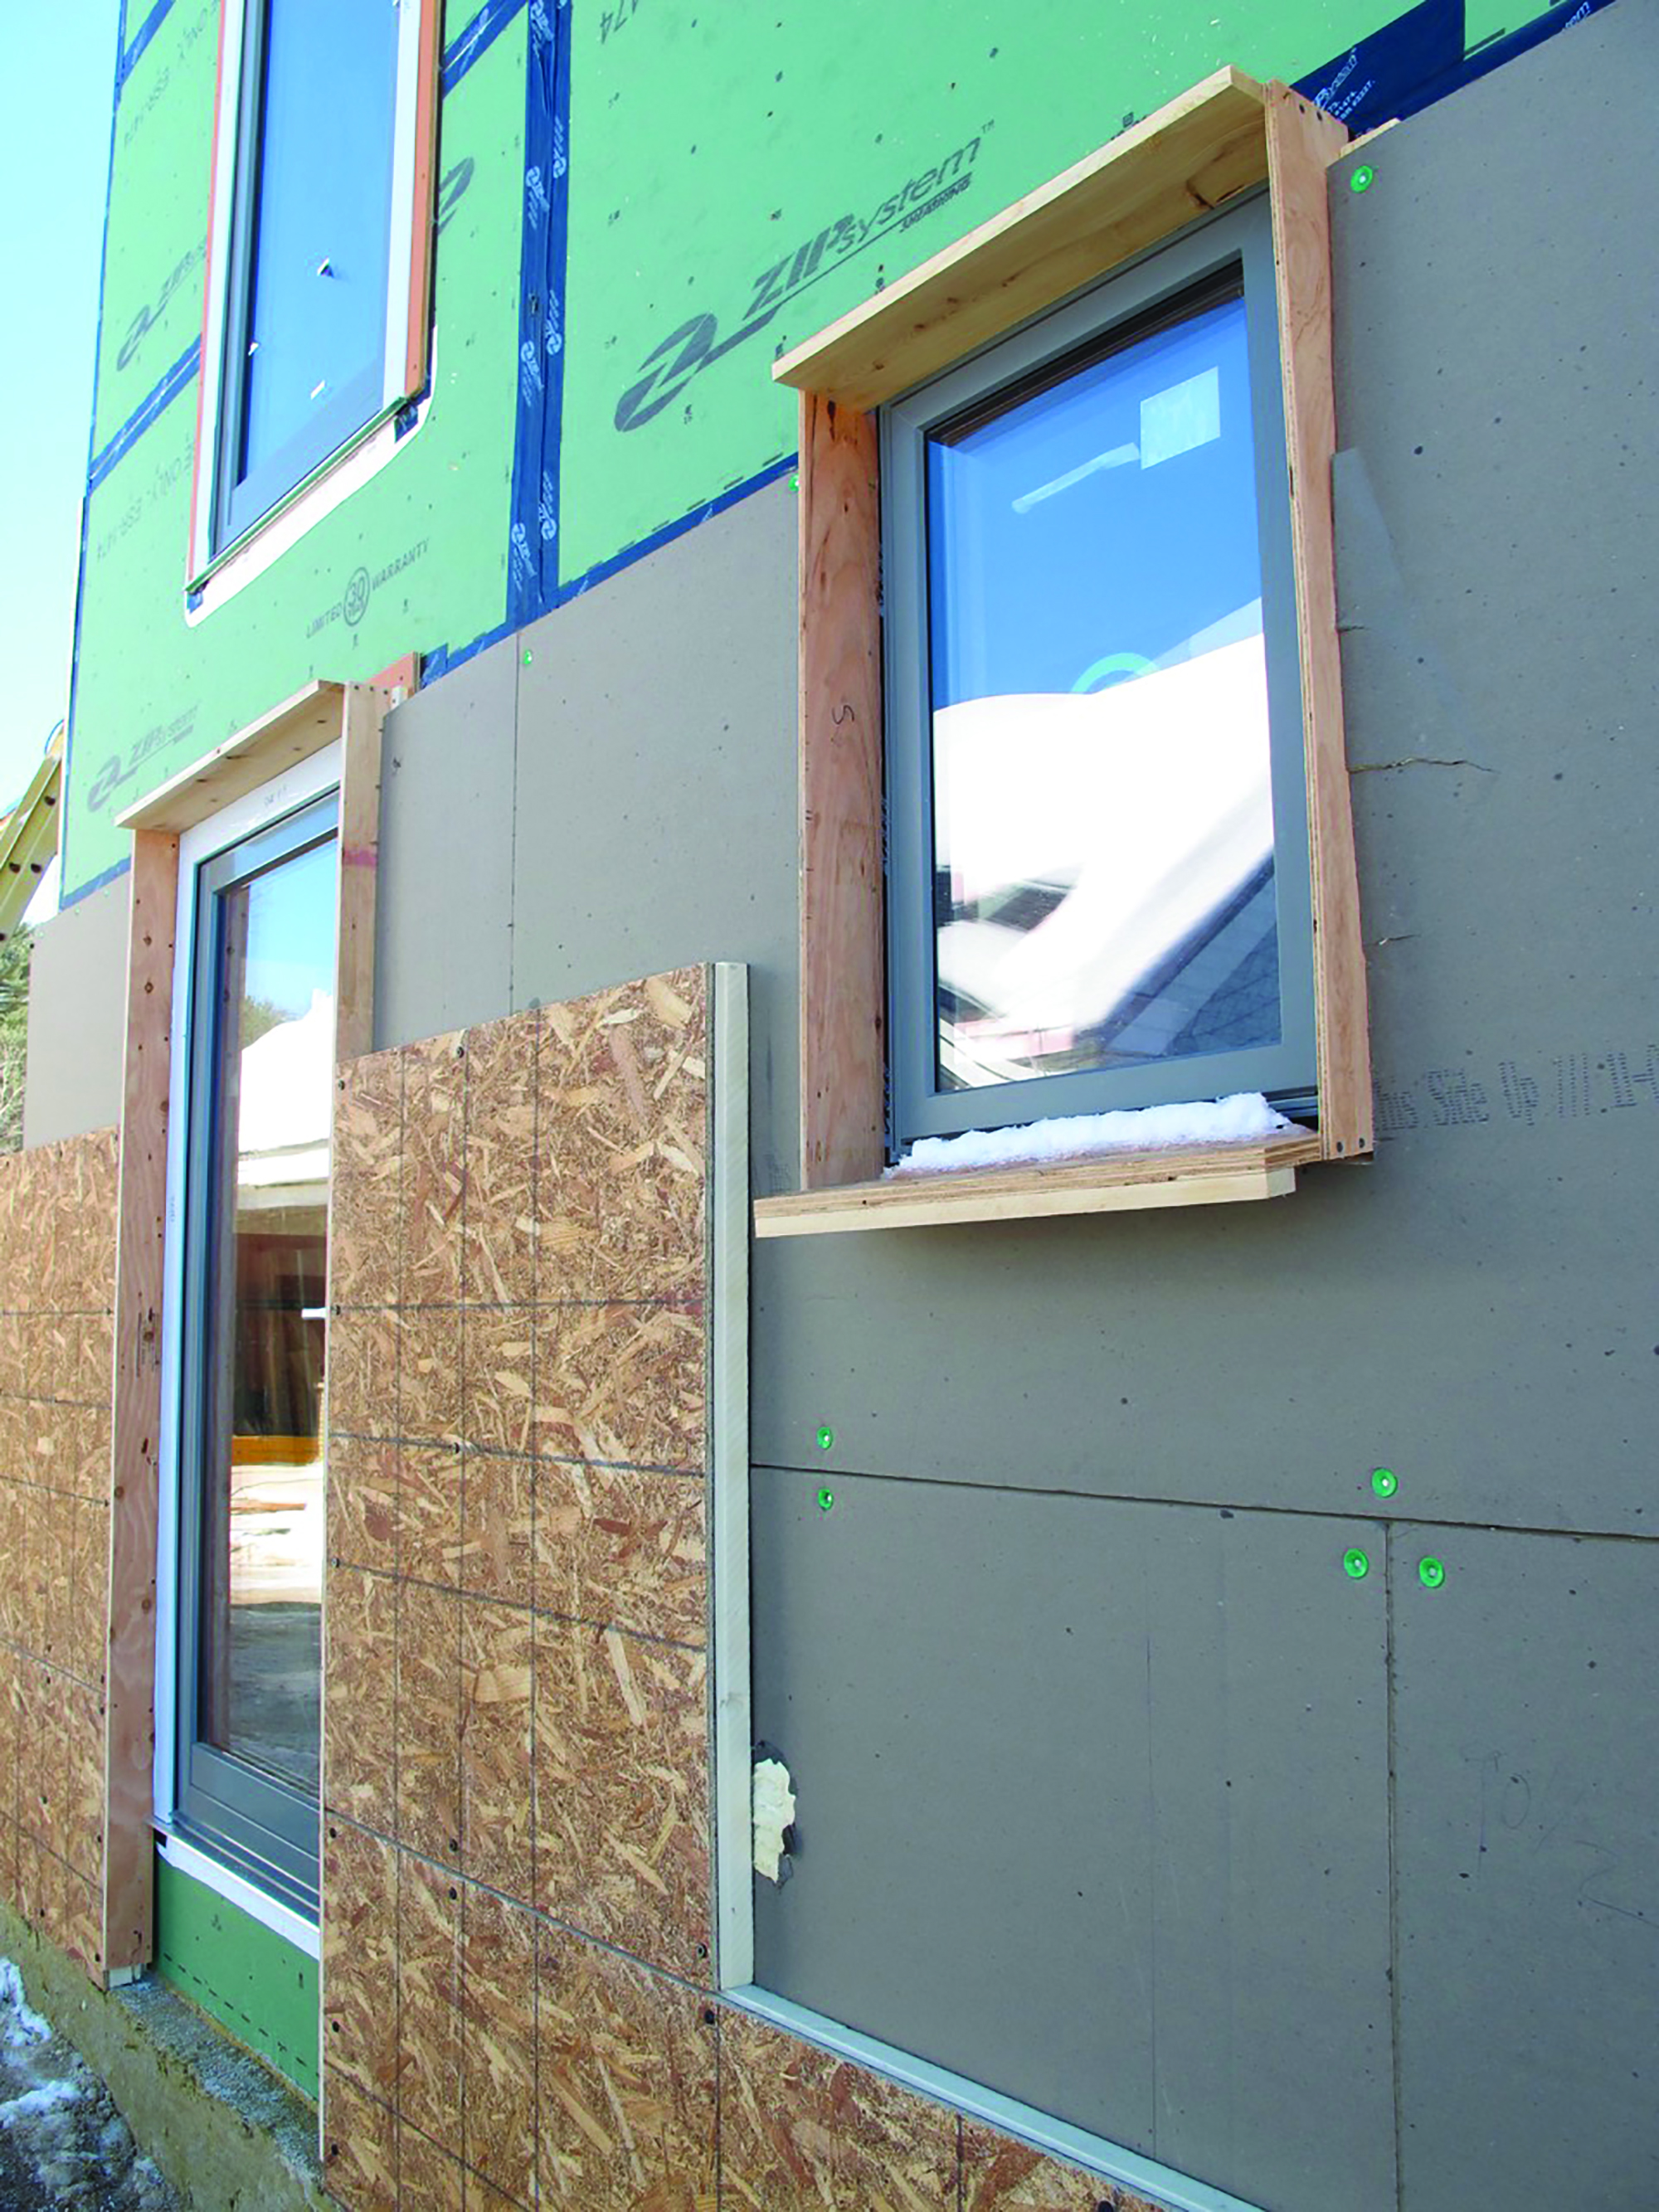 Thickened walls and inset windows aim to reduce heating requirements by mitigating thermal bridging and buffering the home against the elements. Photo: BrightBuilt Homes.